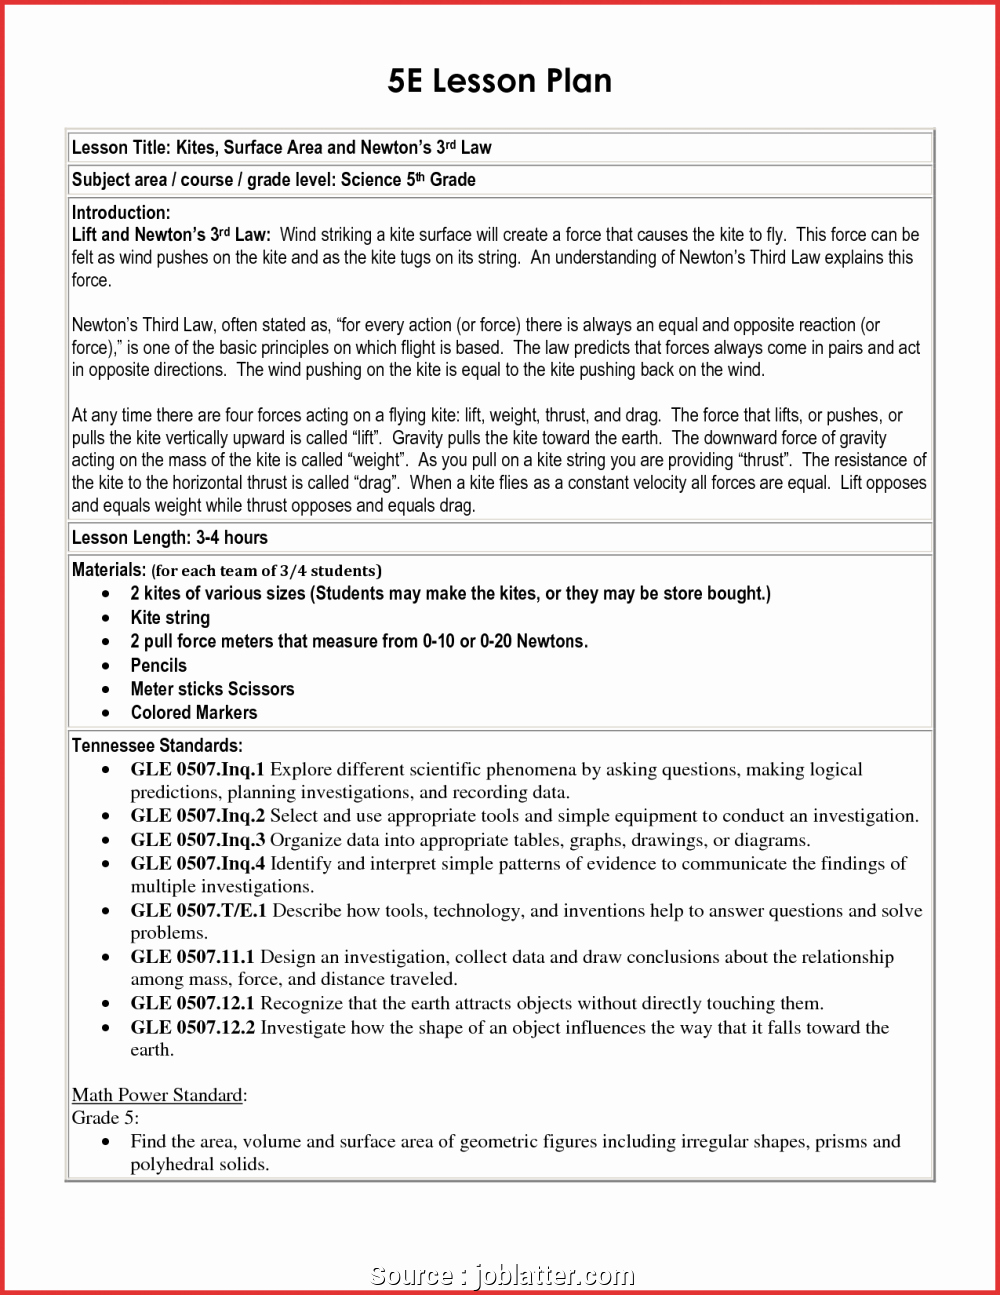 Ngss Lesson Plan Template Awesome 5e Lesson Plan Template Texas for Math Ngss